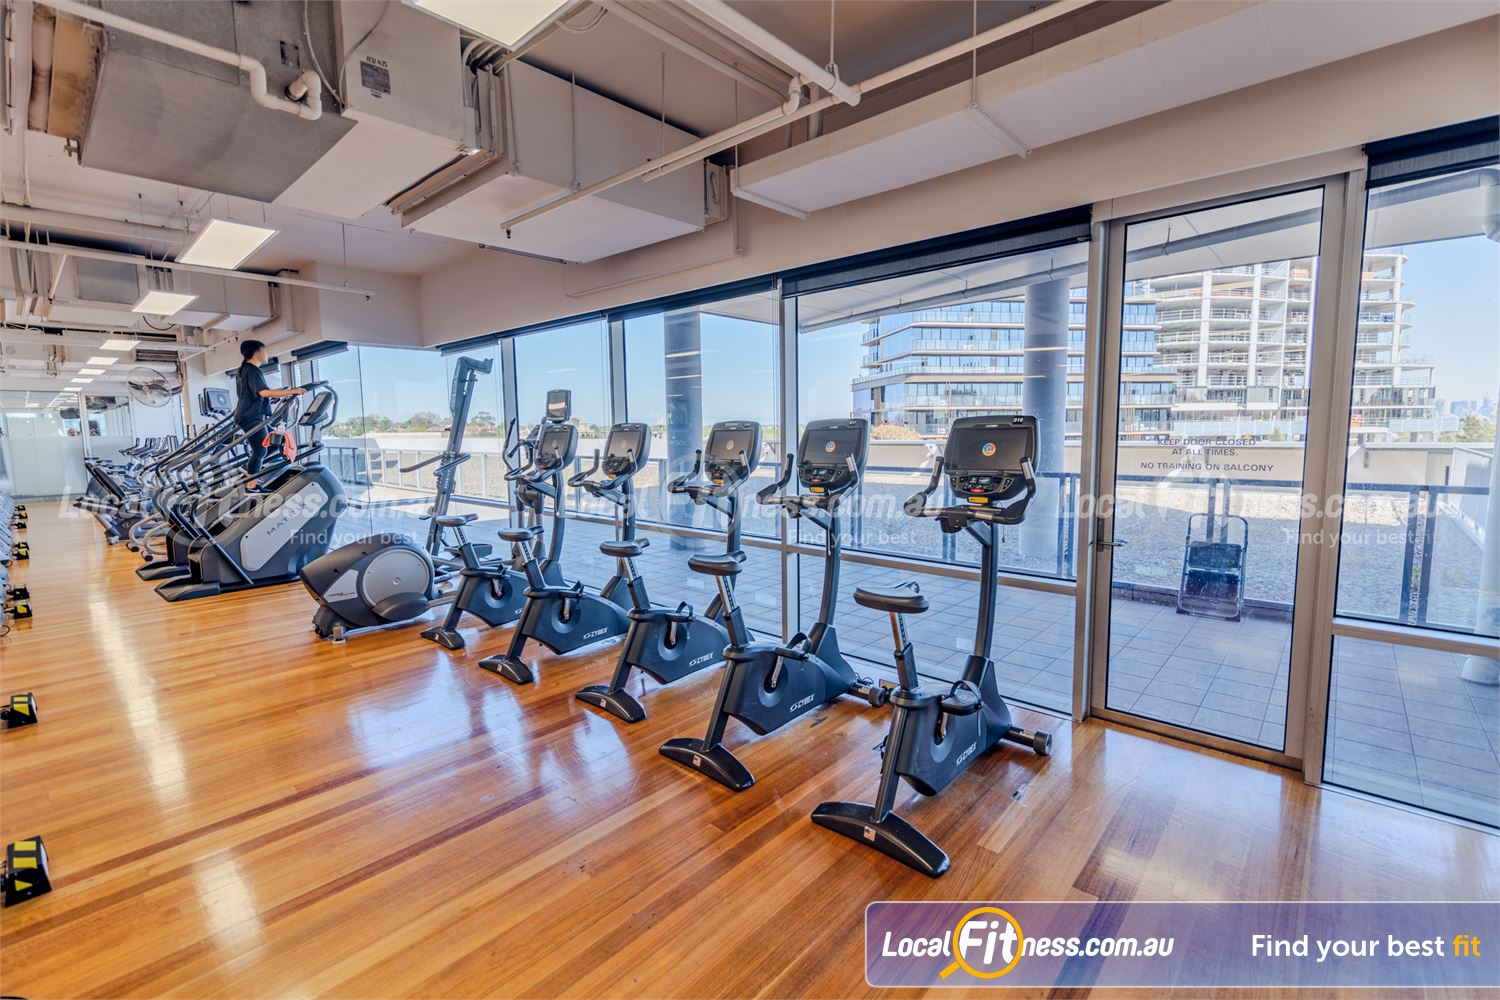 Goodlife Health Clubs Camberwell Melbourne city skyline views from our Camberwell cardio area.